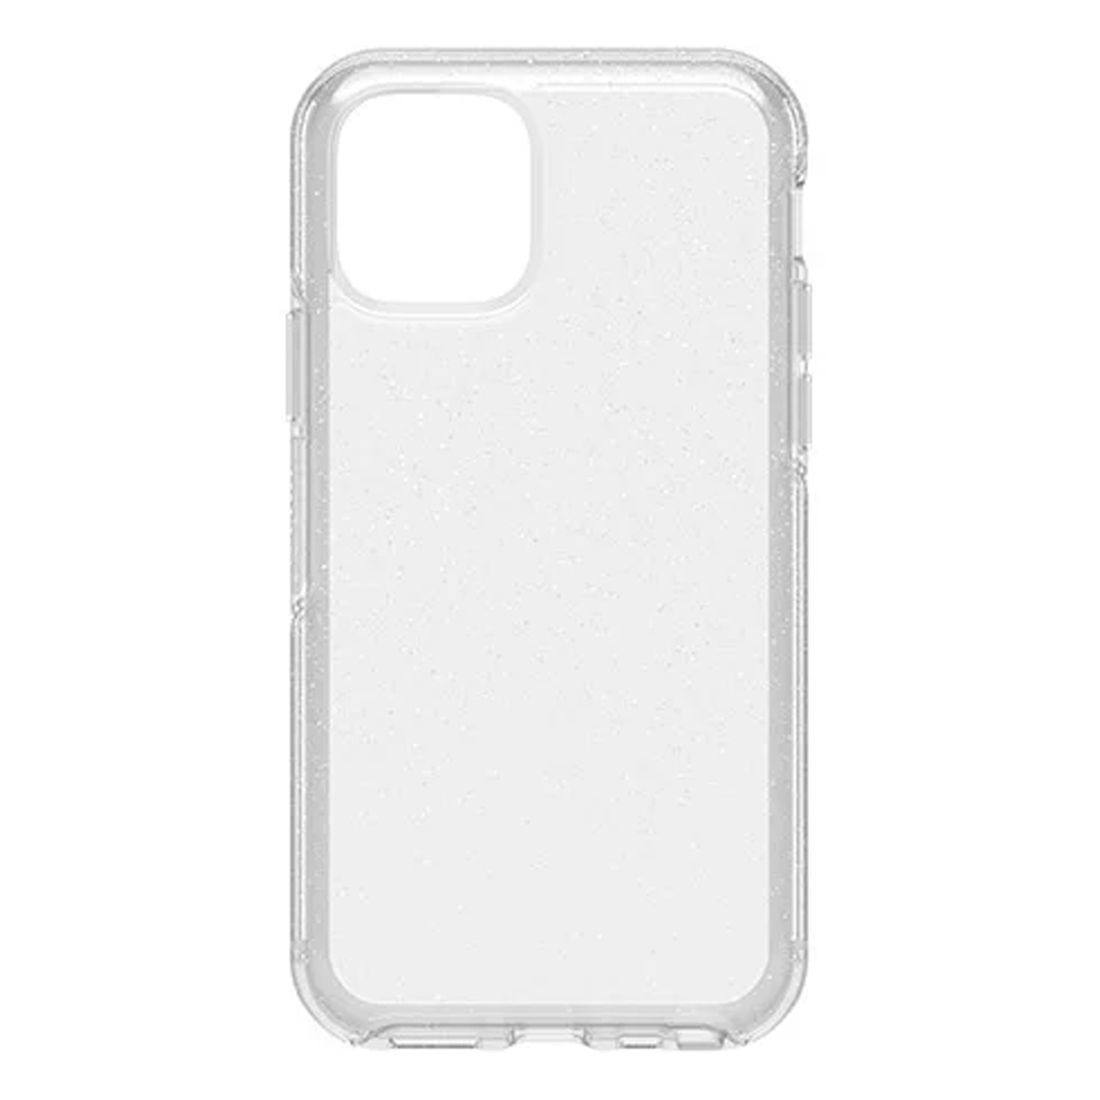 OtterBox Symmetry Glitter Case For iPhone 11 Pro - Stardust